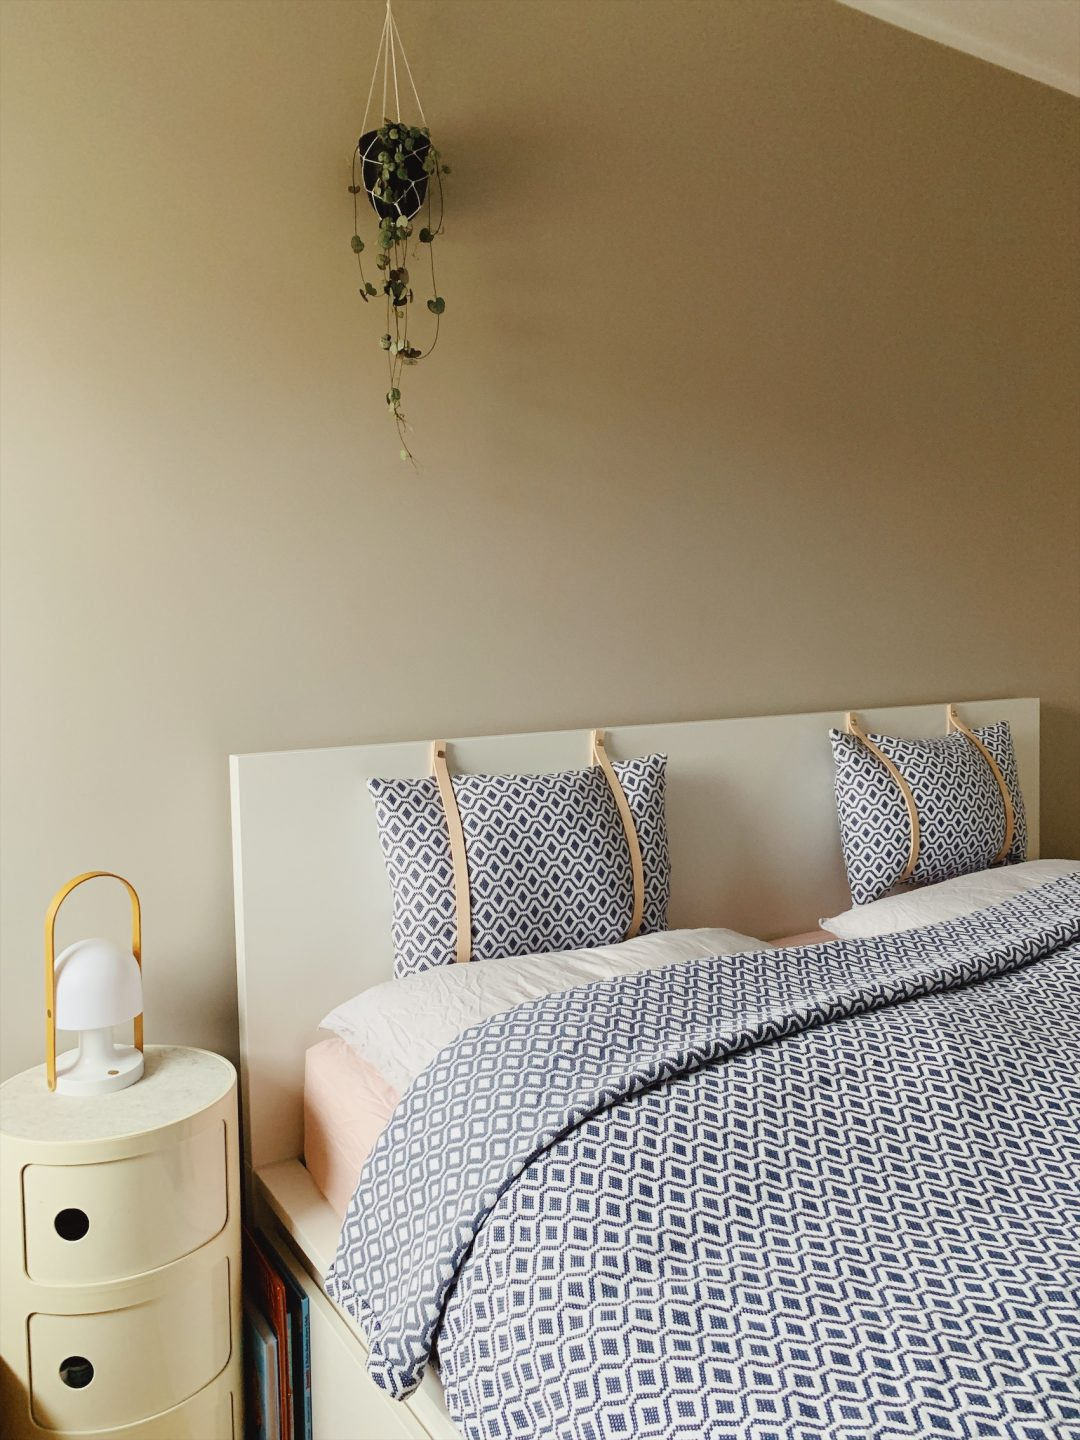 Ikea Hack: DIY Malm Headboard - Malm Kopfteil mit Lederriemen individualisieren by eat blog love